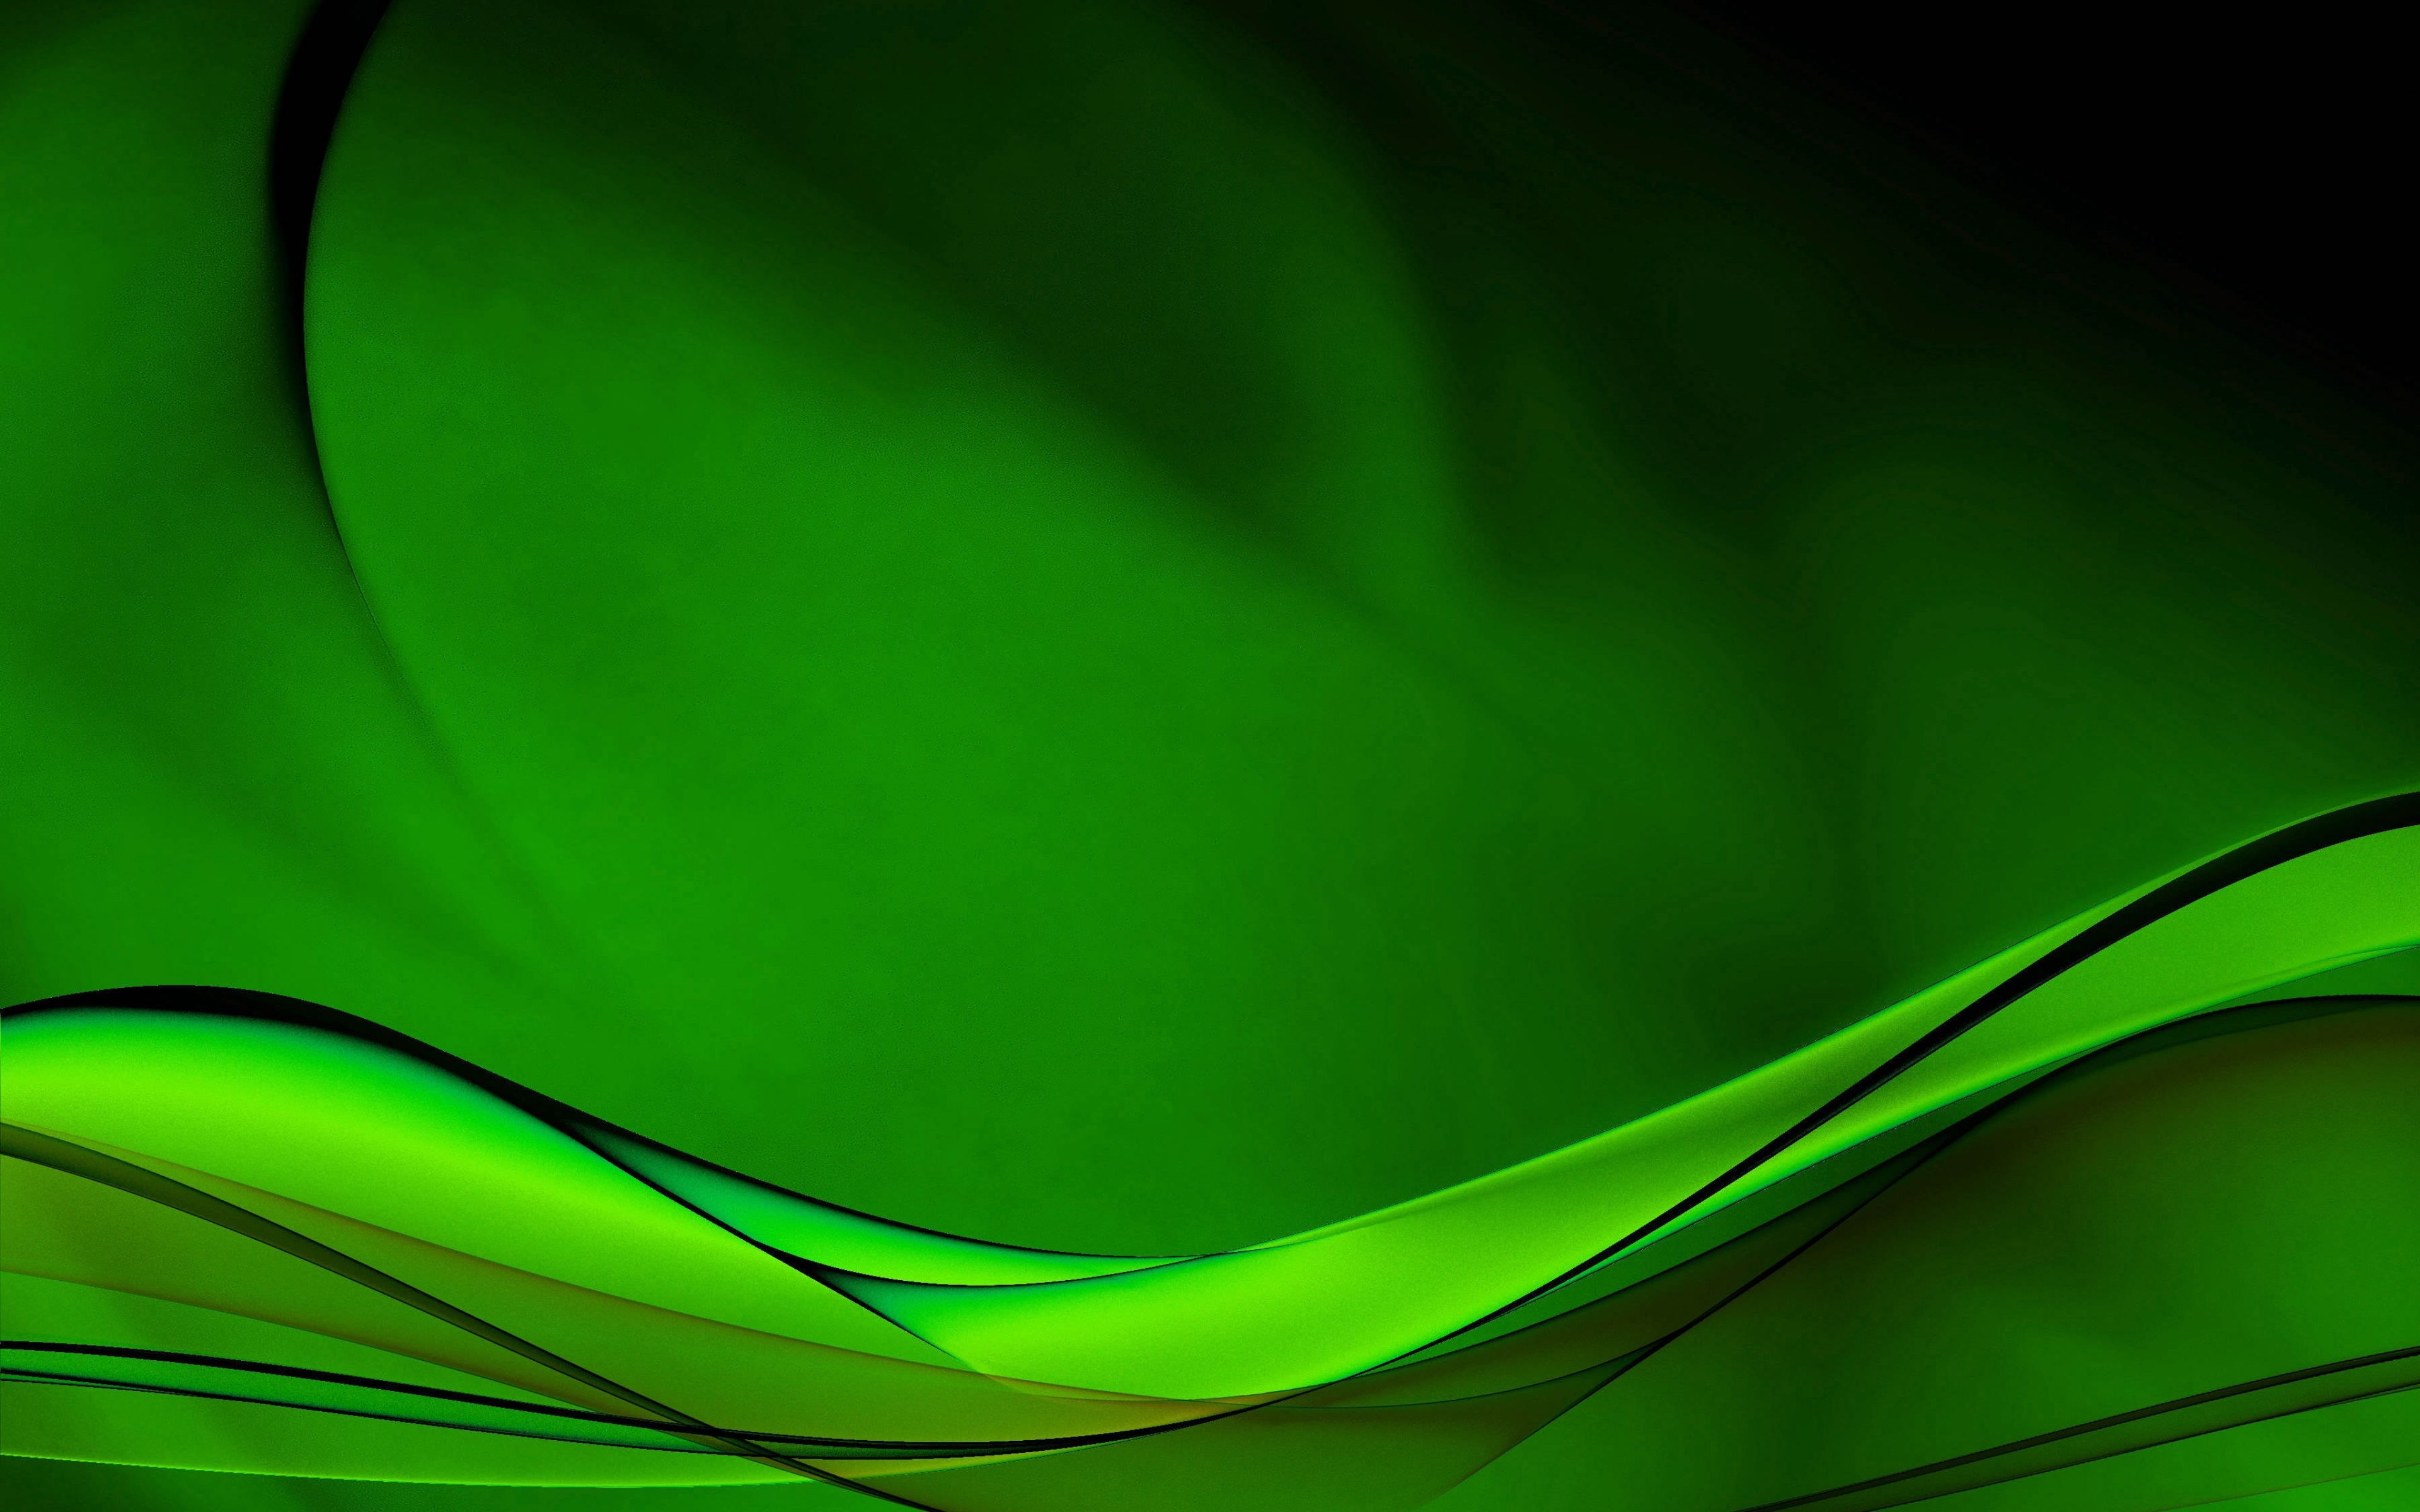 Free Download Abstract Background Green Lines Wallpaper Background Ultra Hd 4k 3840x2400 For Your Desktop Mobile Tablet Explore 37 4k Abstract Wallpapers 3840x2160 Wallpaper 4k Hd Wallpaper 4k Wallpaper